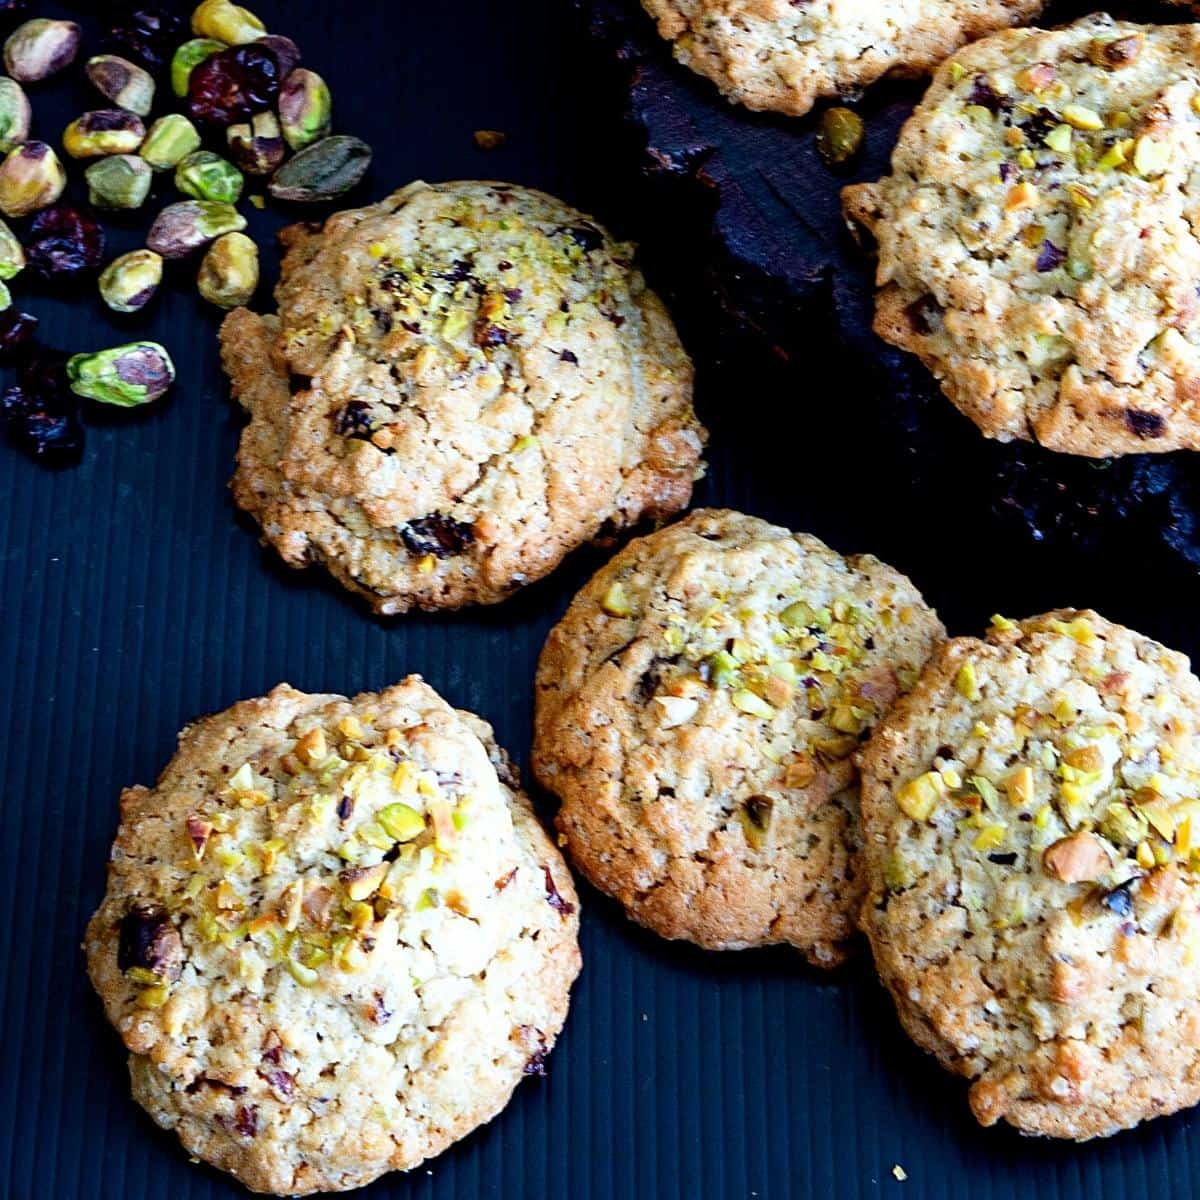 Cookies on a table with some pistachios and cranberries.